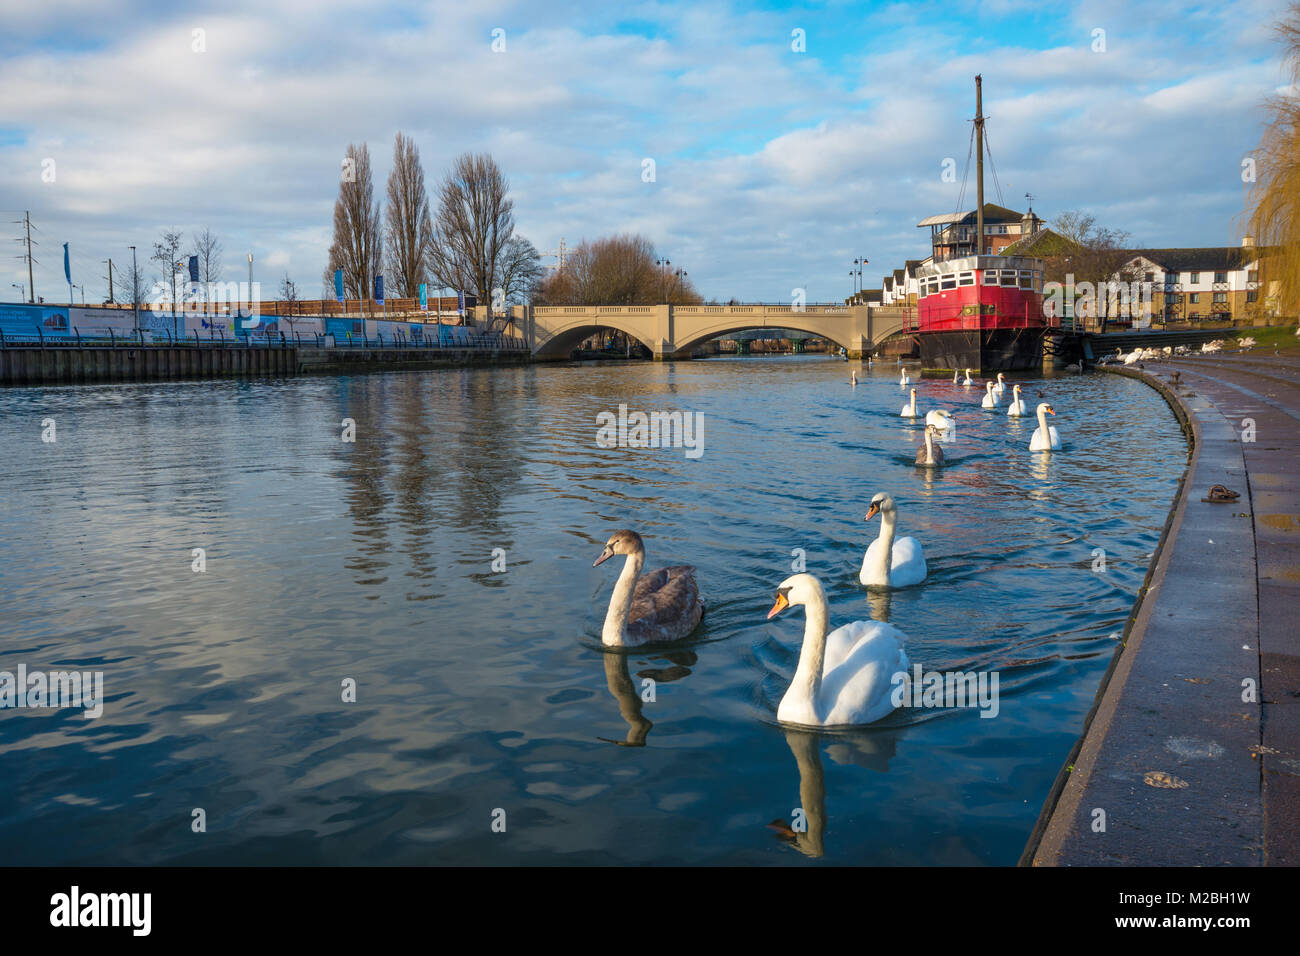 River Nene, Peterborough, Cambridgeshire. UK - Stock Image